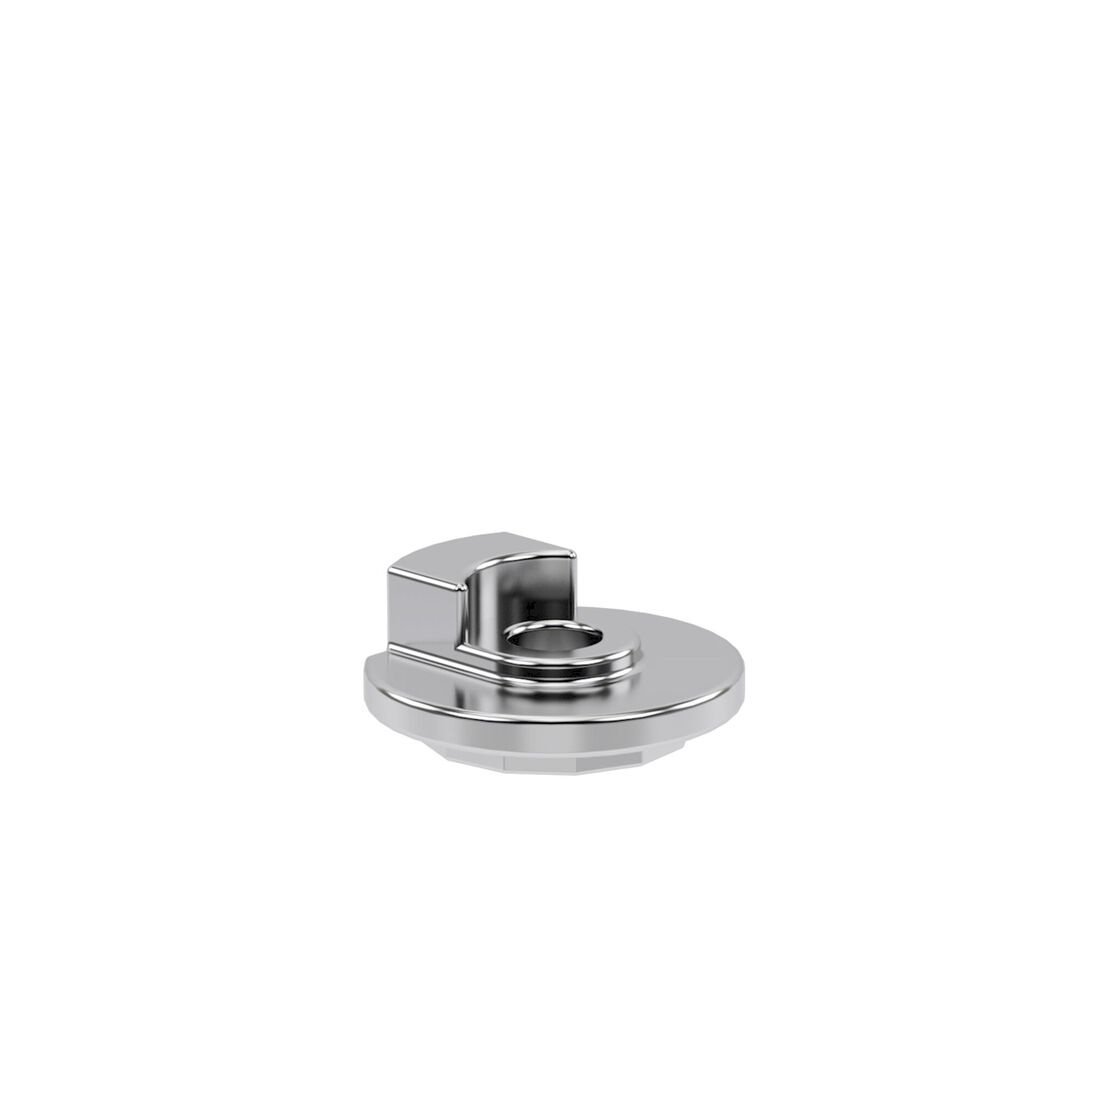 CYBEX Spacer For Quick Release Skewer 2.5 mm in Silver - 2.5mm large image number 1